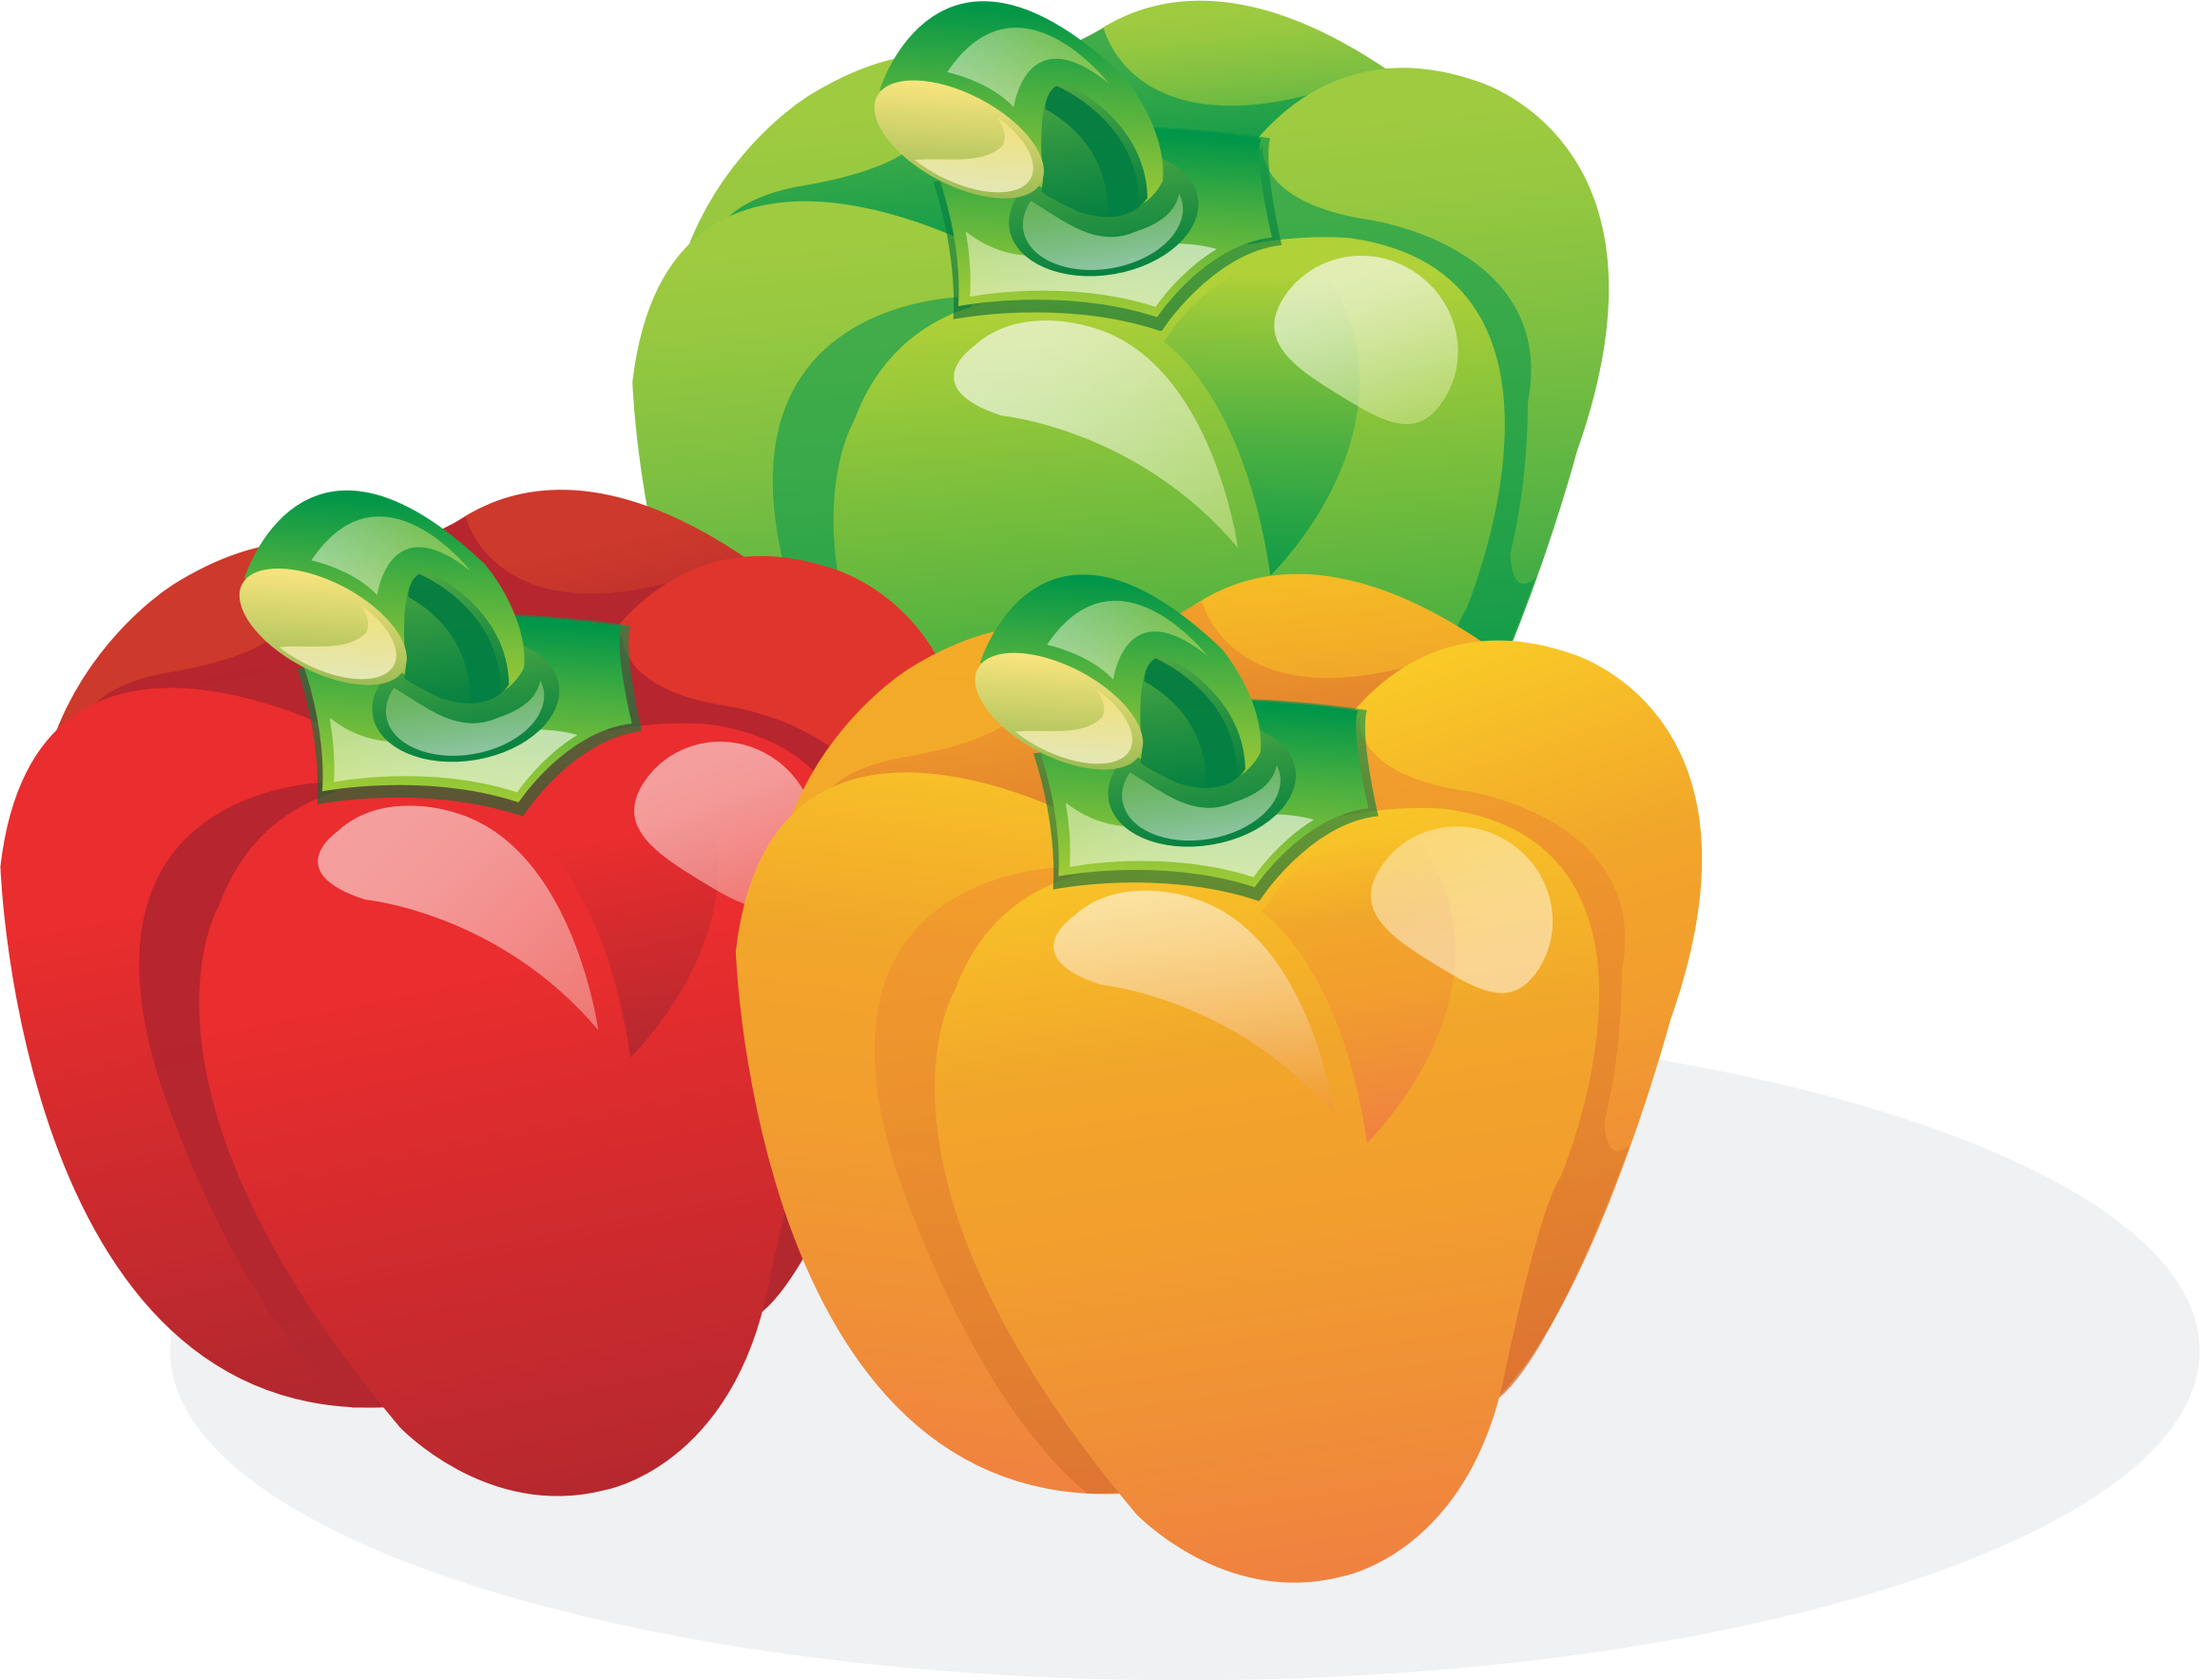 Bell pepper plant png. Multicolored peppers icons free